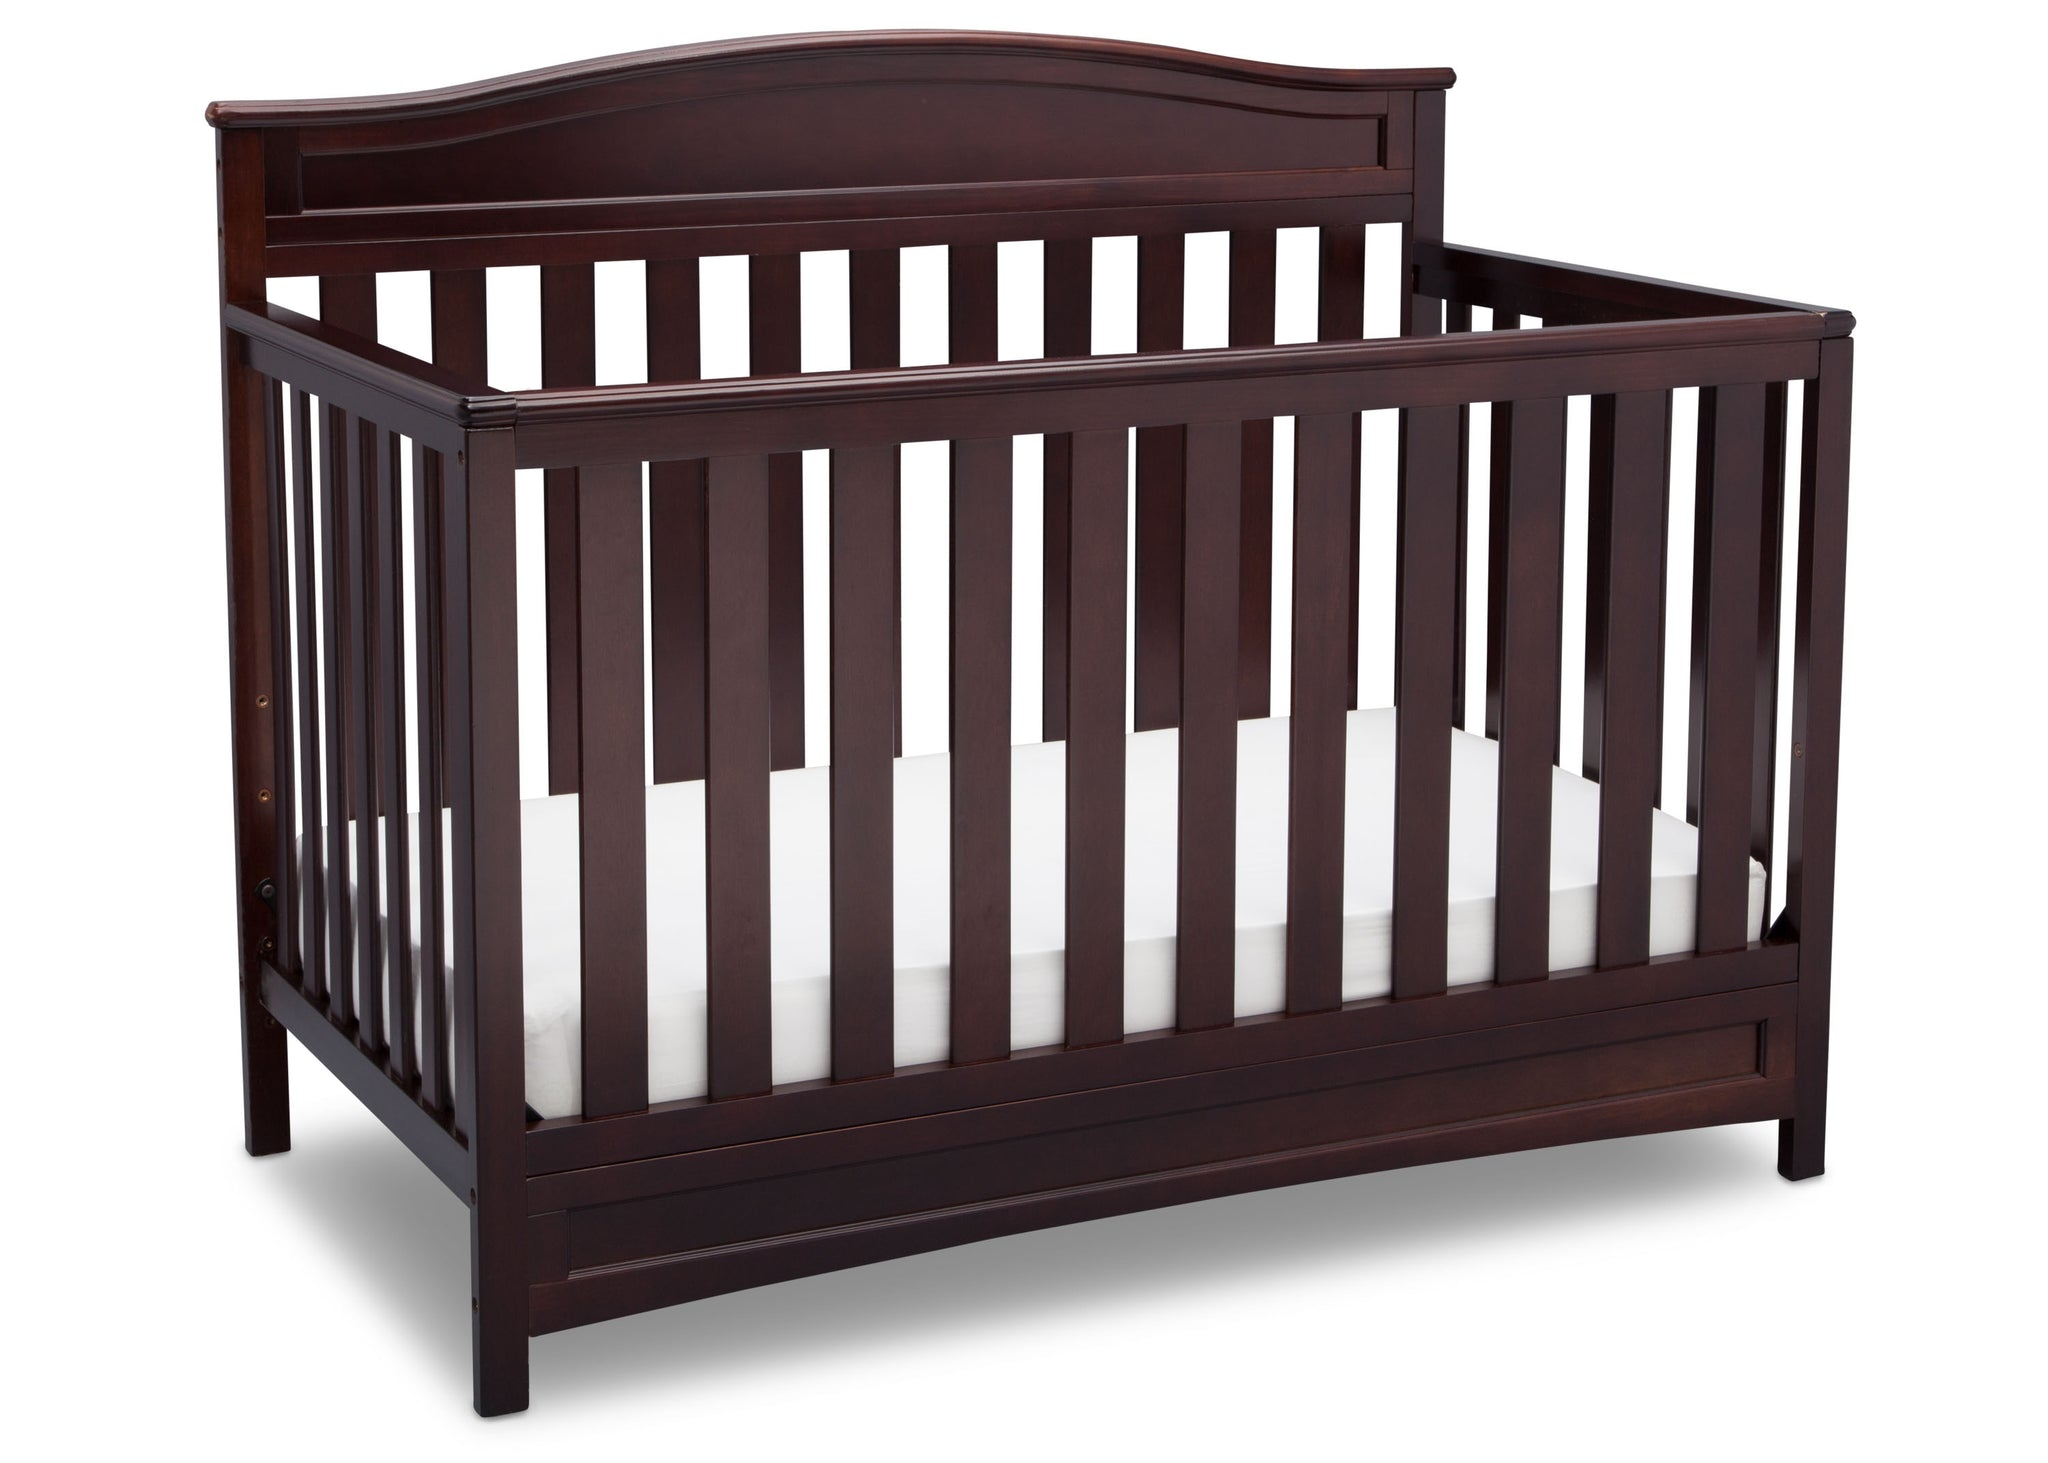 Delta Children Dark Chocolate (207) Emery 4-in-1 Crib (7380), Angle View